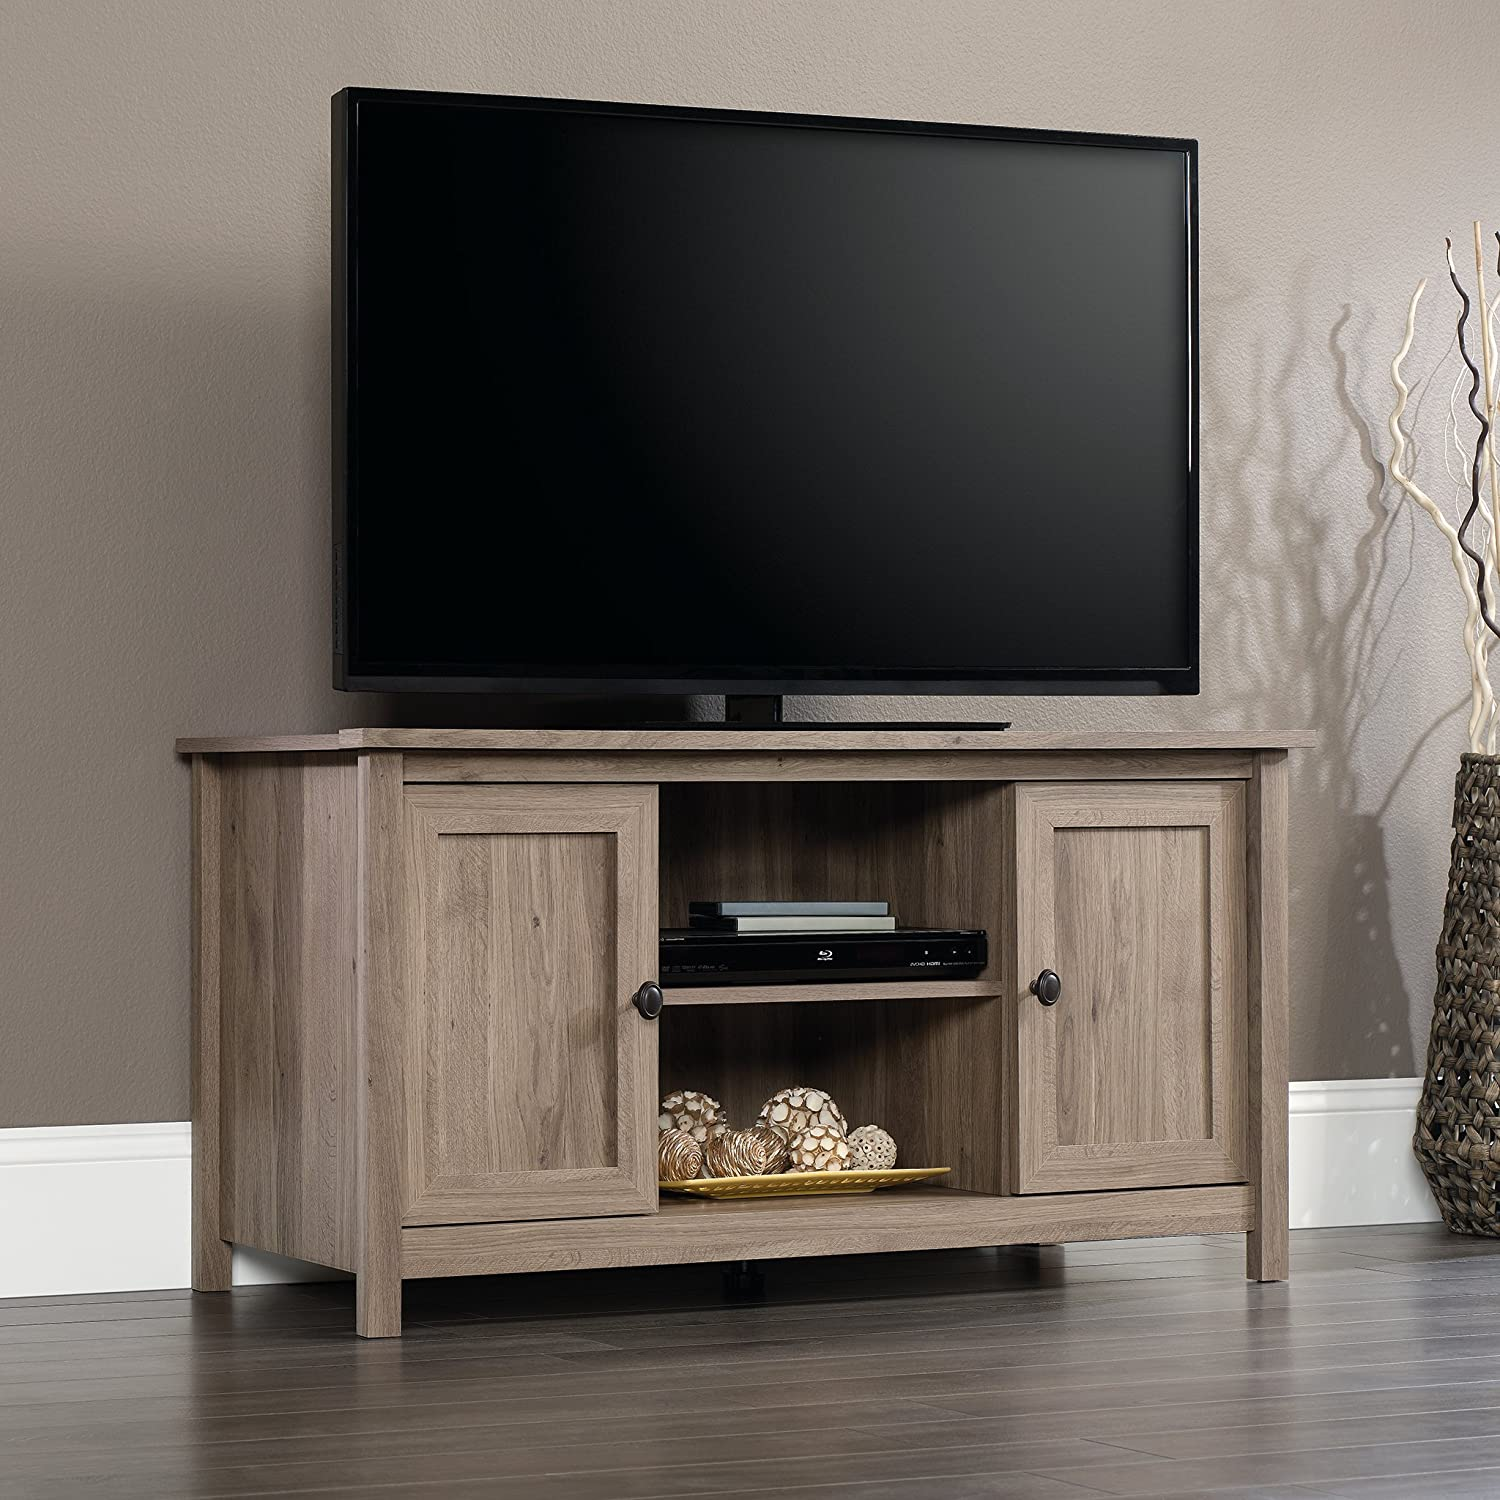 Amazon Com Sauder 417772 County Line Panel Tv Stand For Tv S Up To